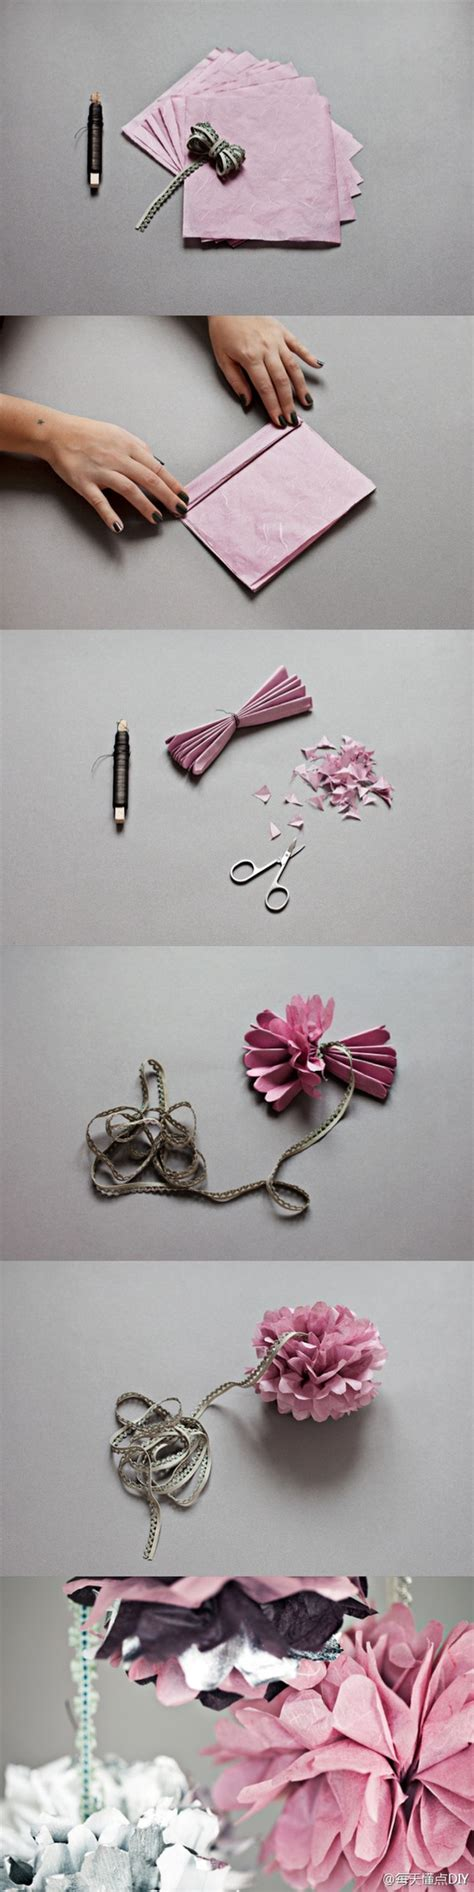 easy craft projects for teenagers 10 diy crafts ideas for diy ideas tips